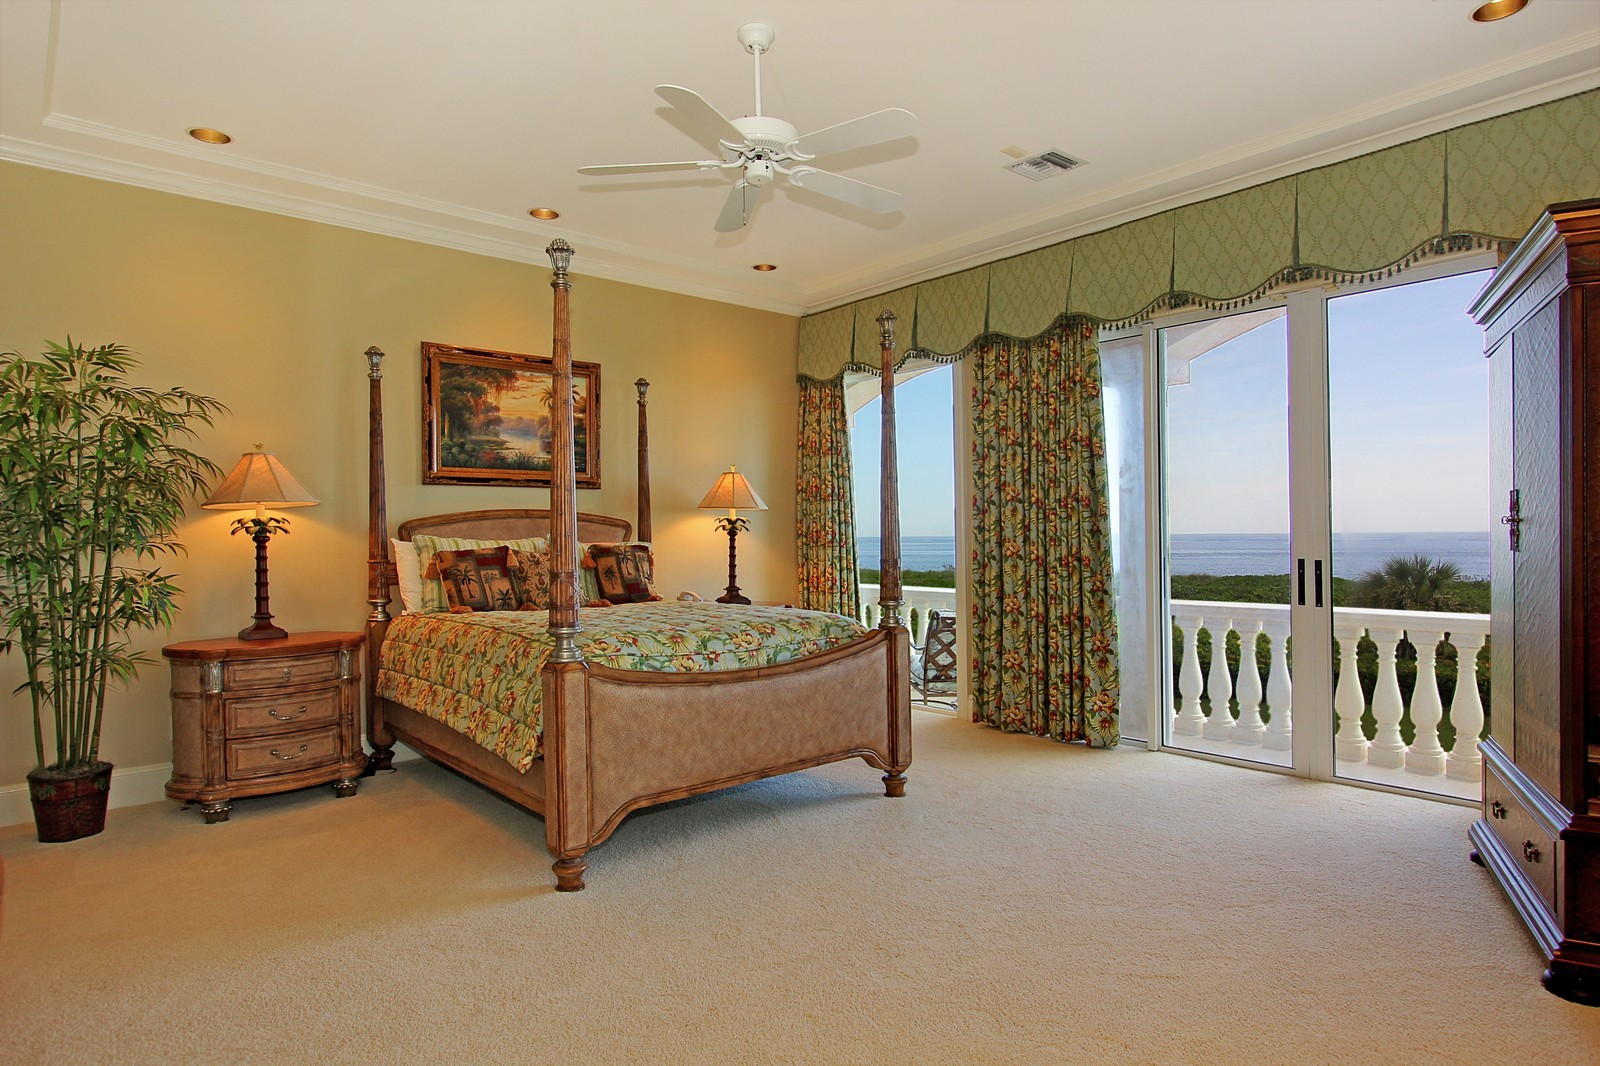 Real Estate Photography - 3047 SE Island Point Lane, Stuart, FL, 34996 - Guest House Bedroom 1 of 4